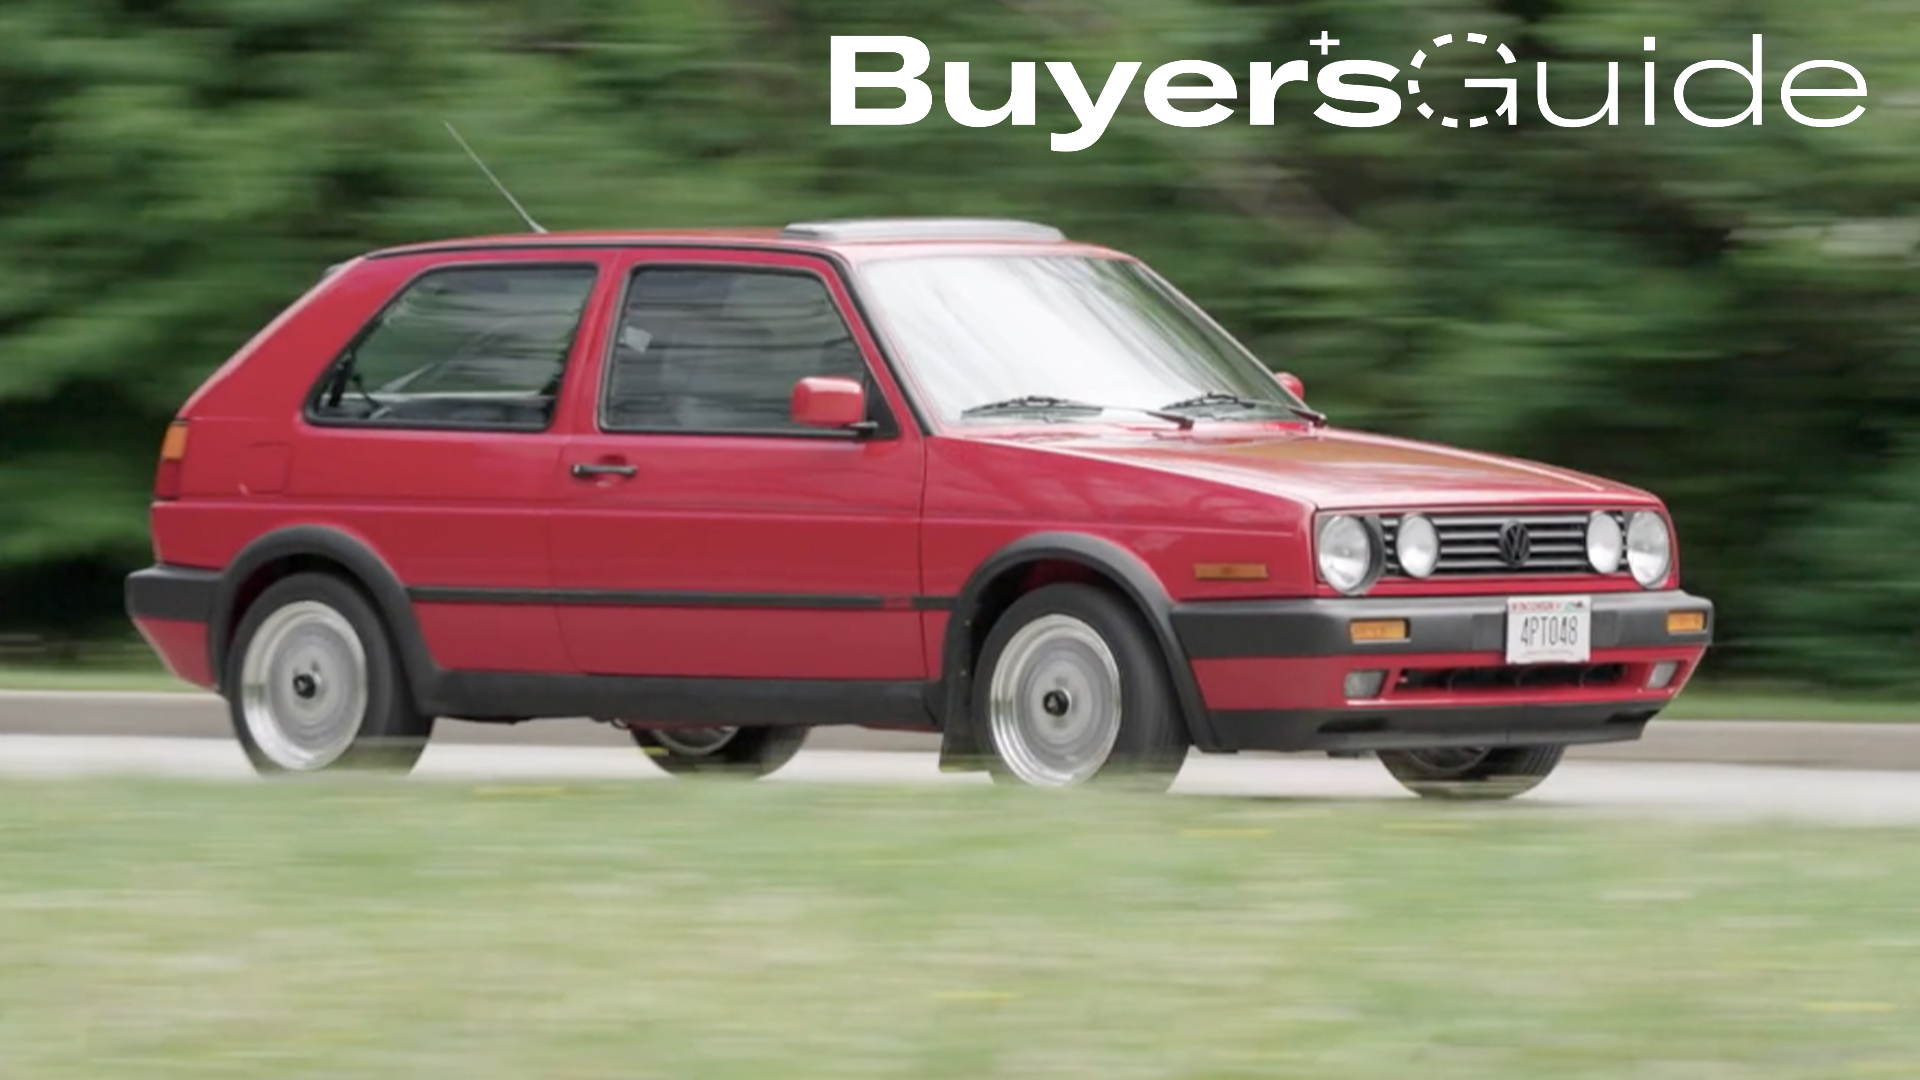 VW Golf buyers guide